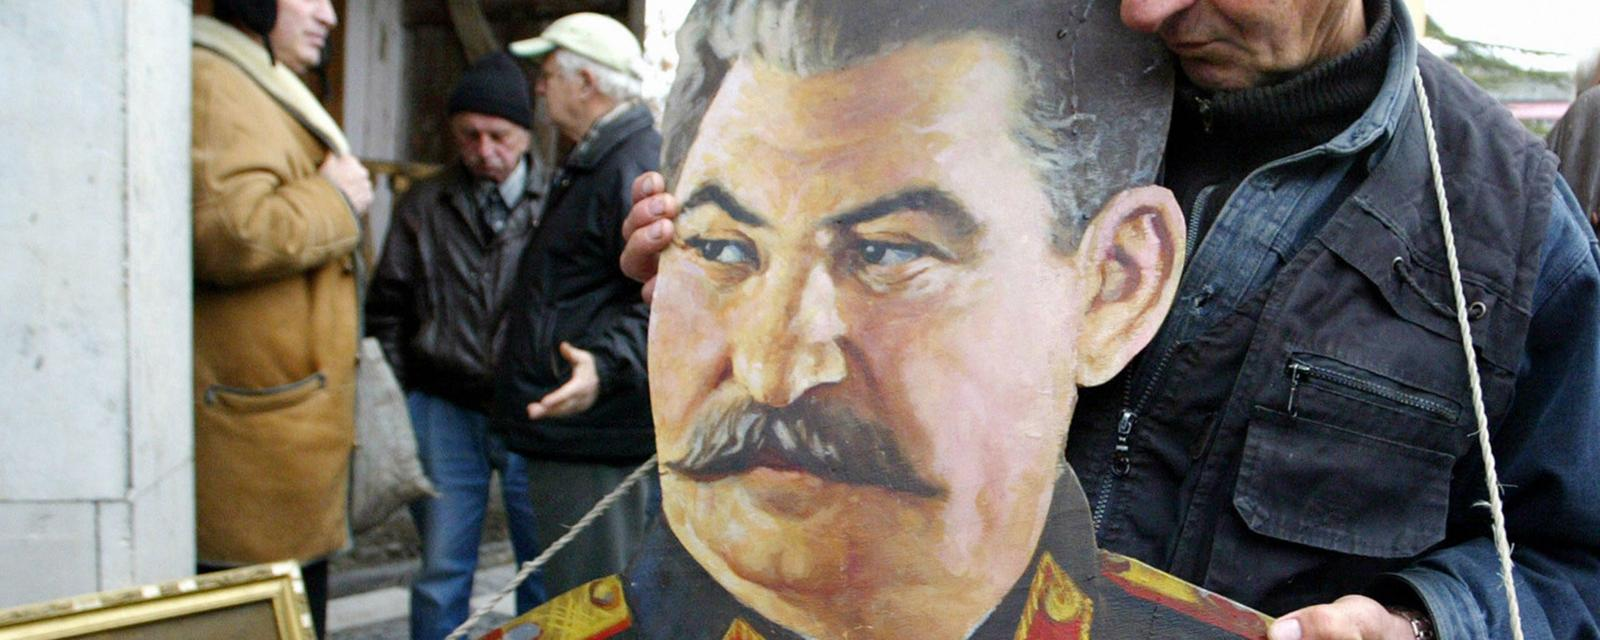 Will dictators disappear?